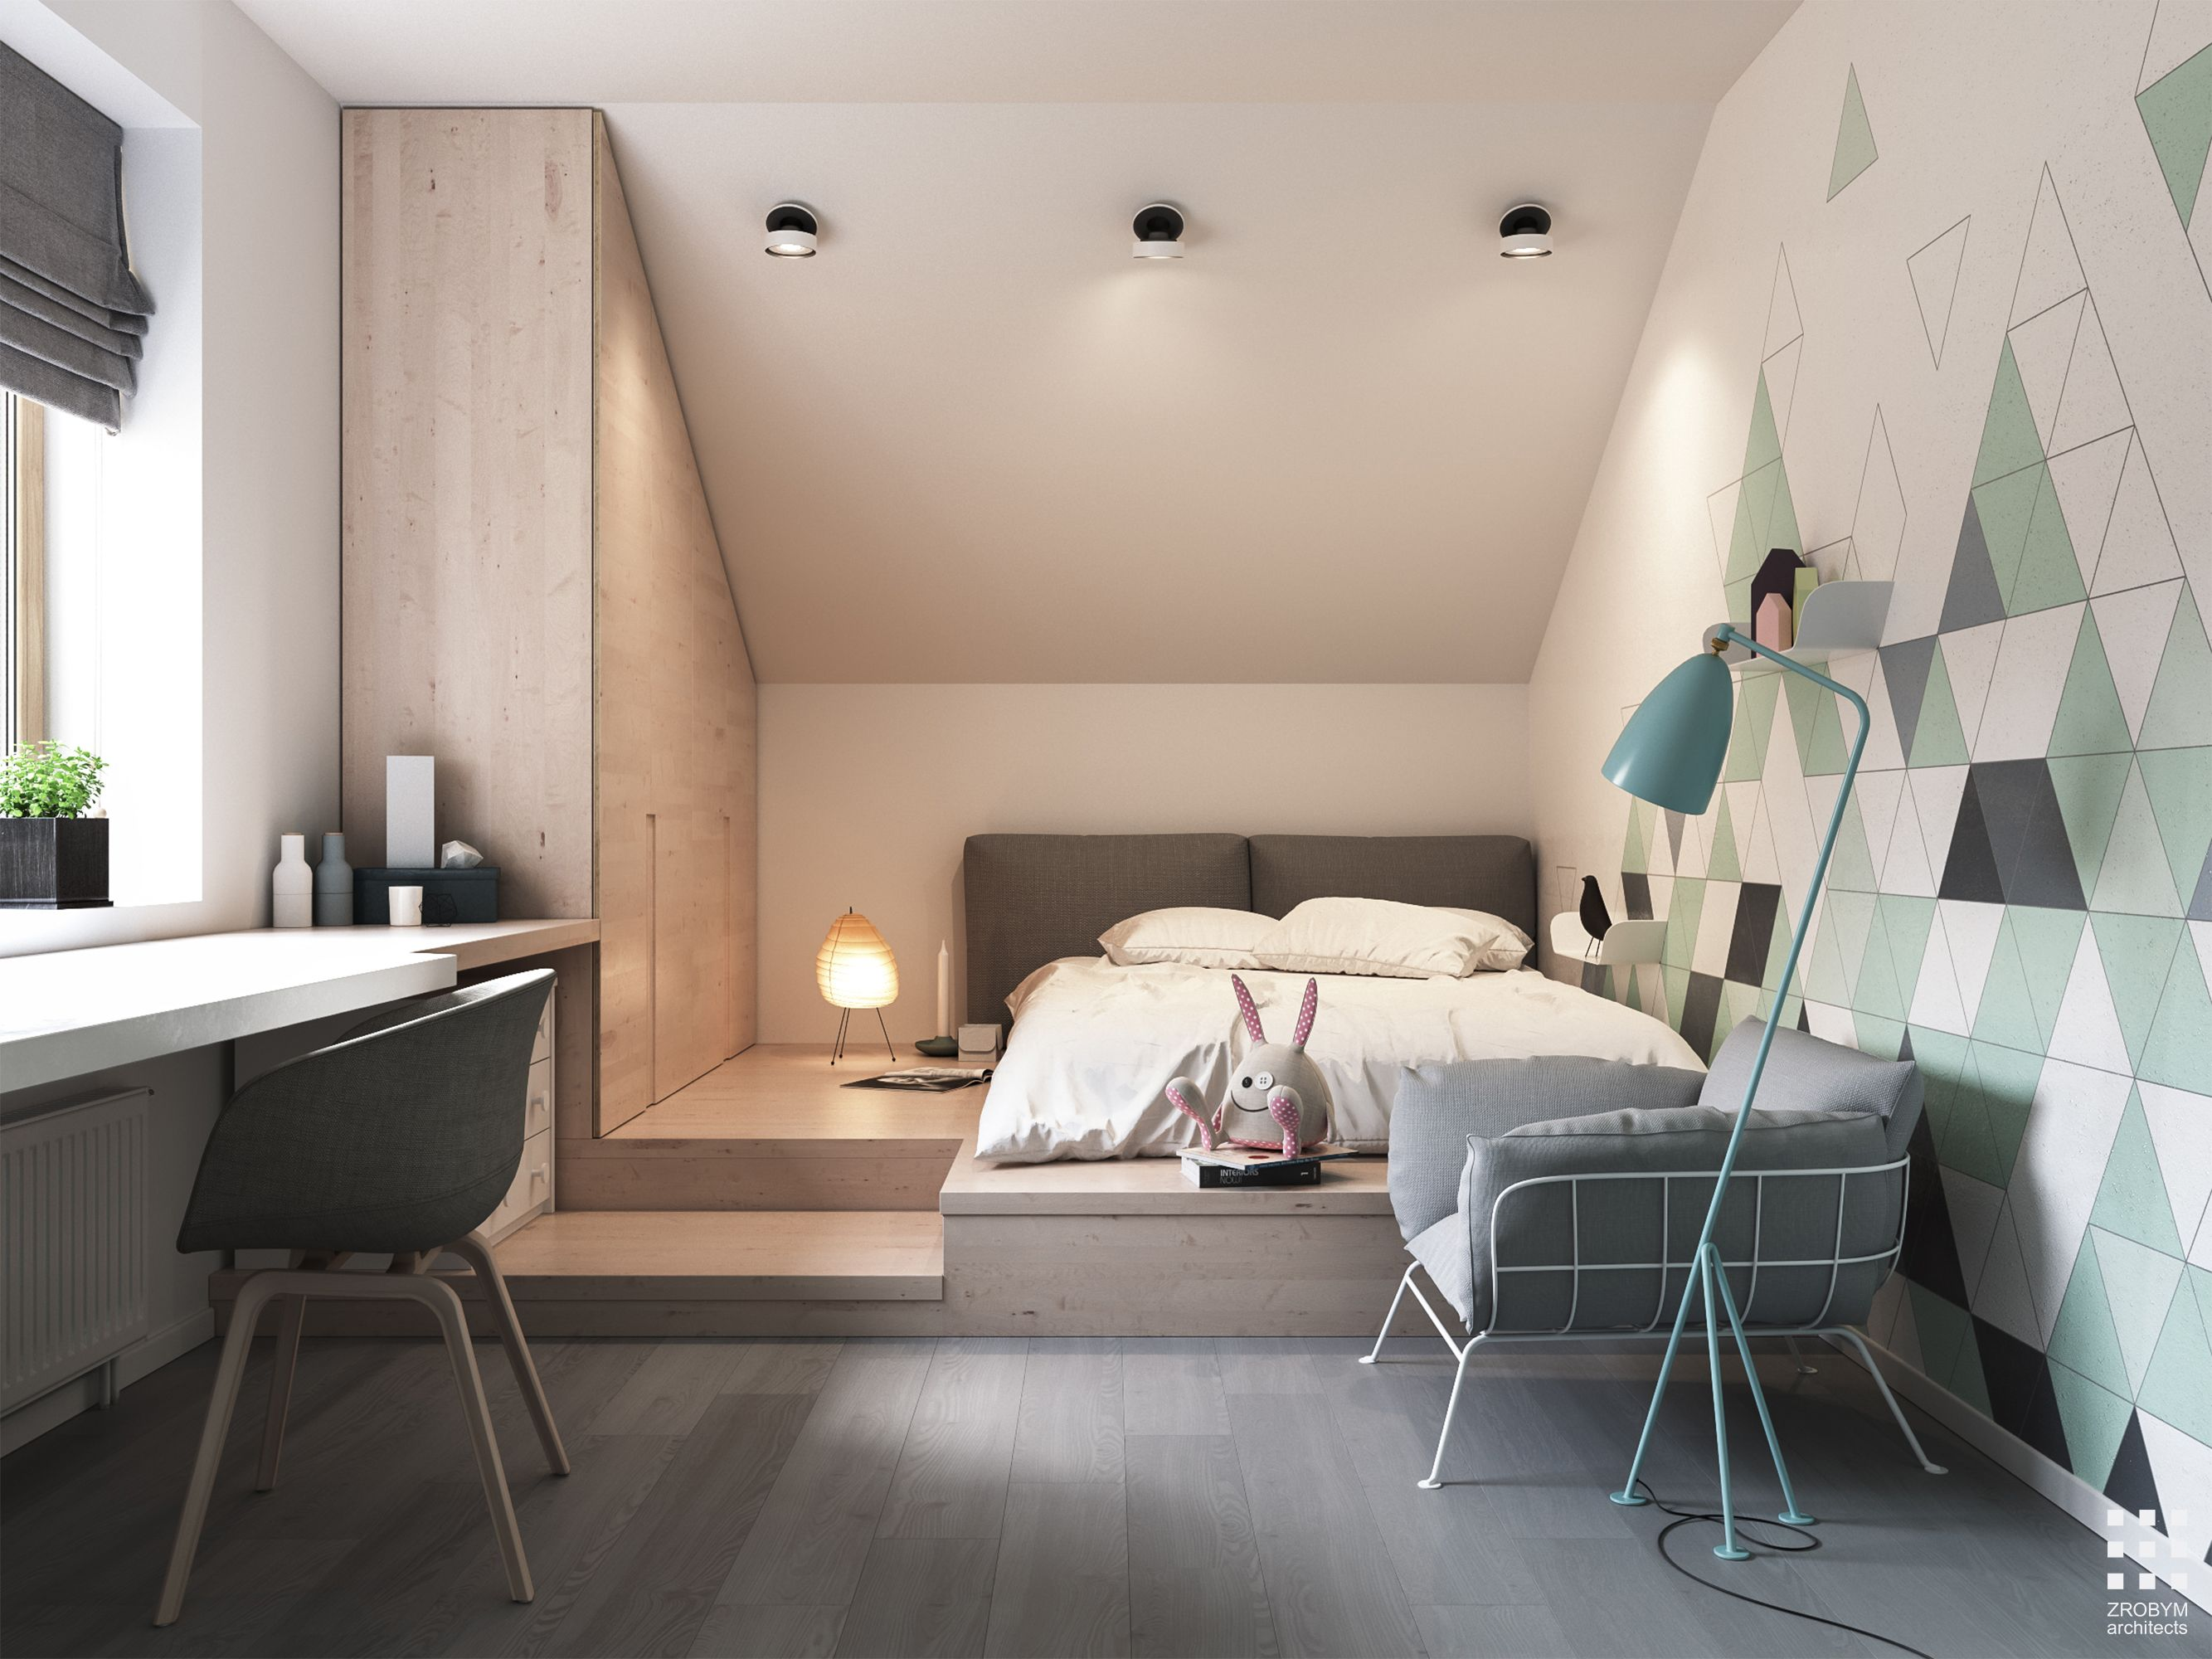 Bedroom Design Online Showcase And Discover Creative Work On The World's Leading Online